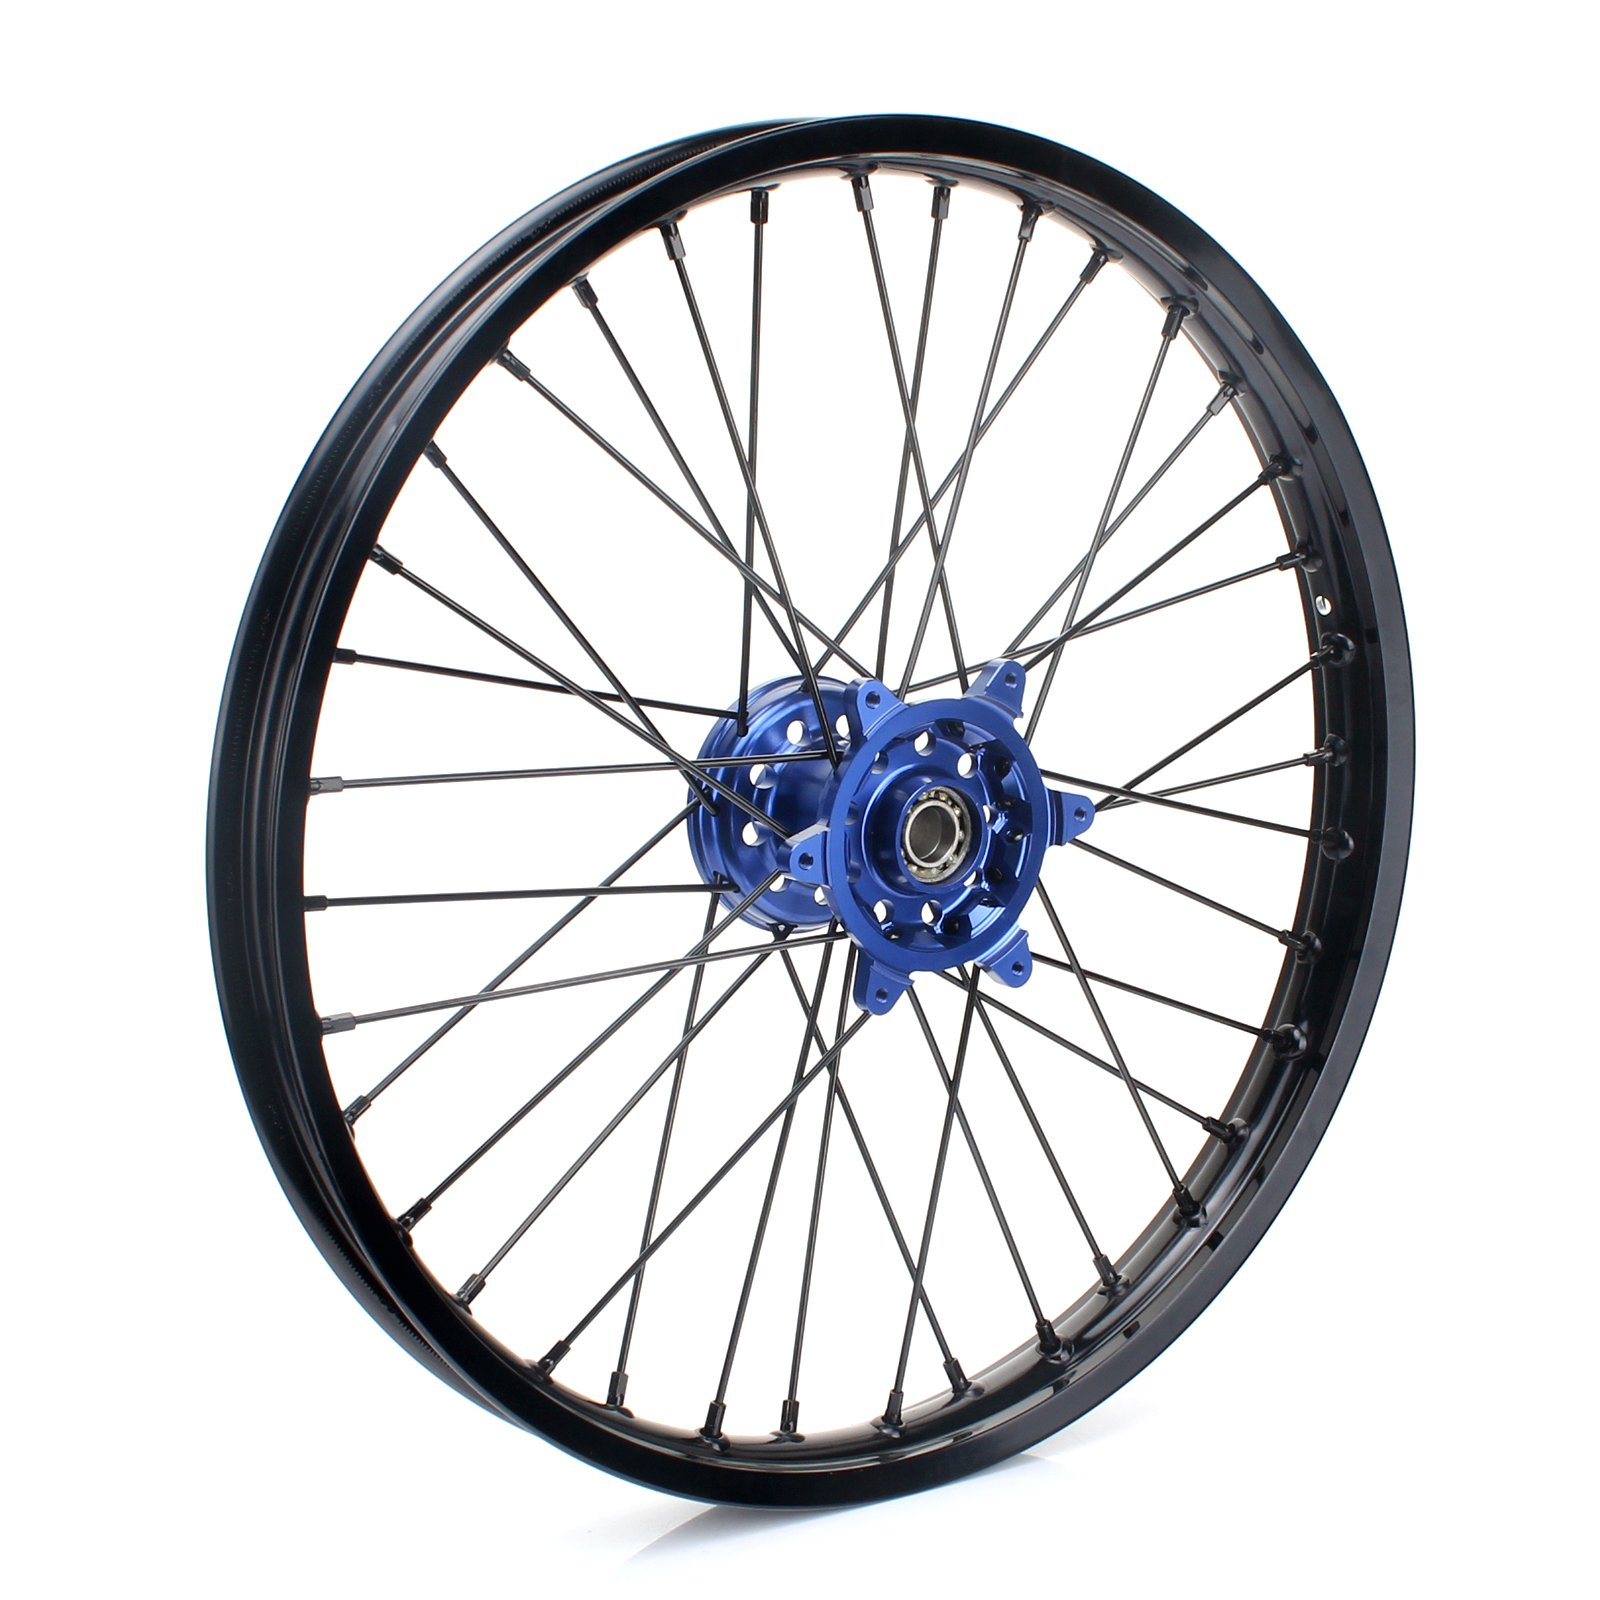 TARAZON 21'' Off-road MX Front Complete Wheel Set Rim Spokes Blue Hub for Yamaha YZ250F YZF250 2007-2013 YZ450F YZF450 2008-2013 YZ125 250 2008-2015